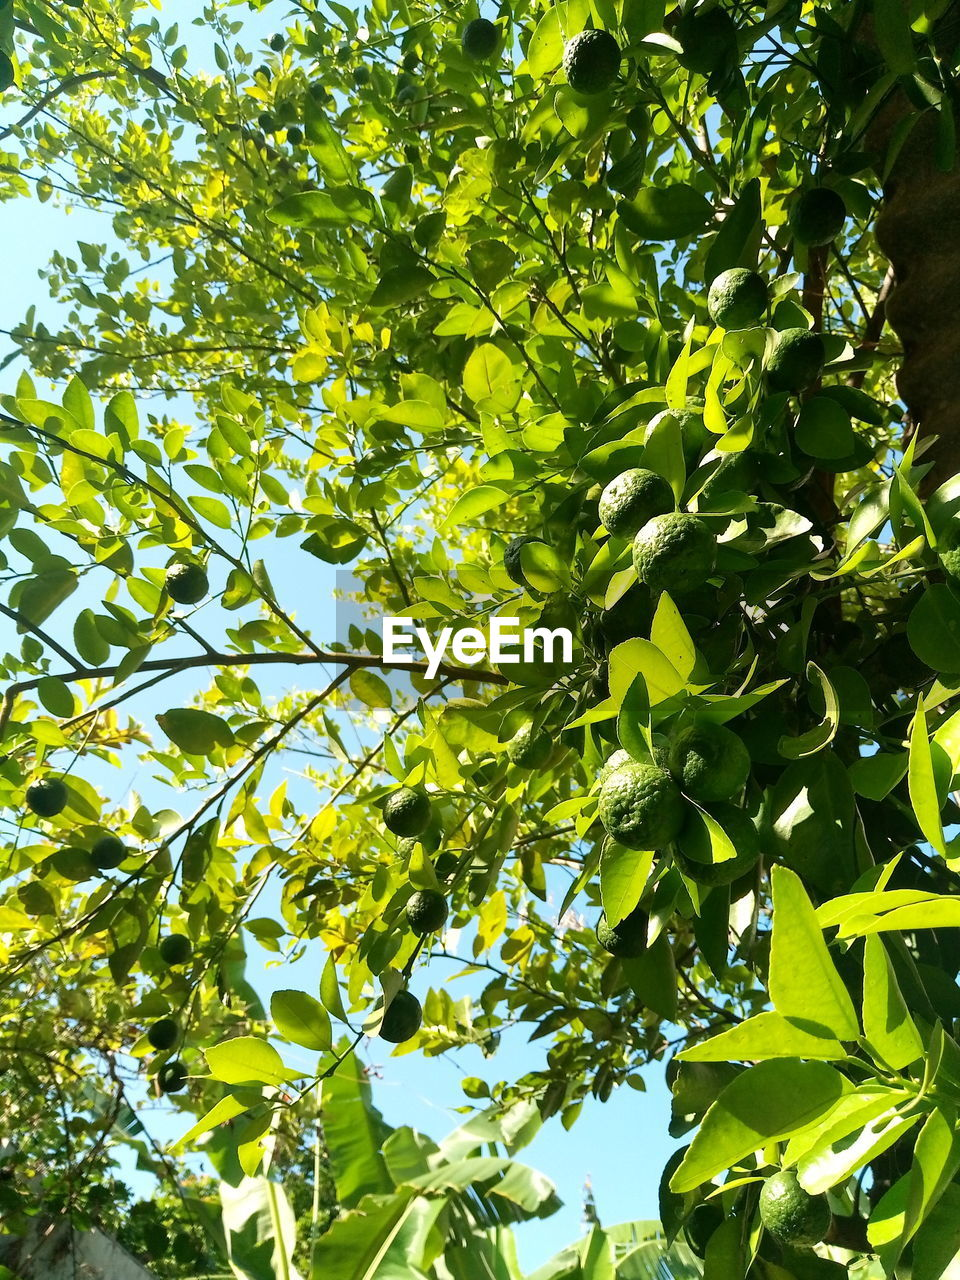 growth, tree, plant, green color, leaf, plant part, low angle view, beauty in nature, no people, sunlight, day, nature, branch, outdoors, tranquility, backgrounds, full frame, food and drink, healthy eating, freshness, tree canopy